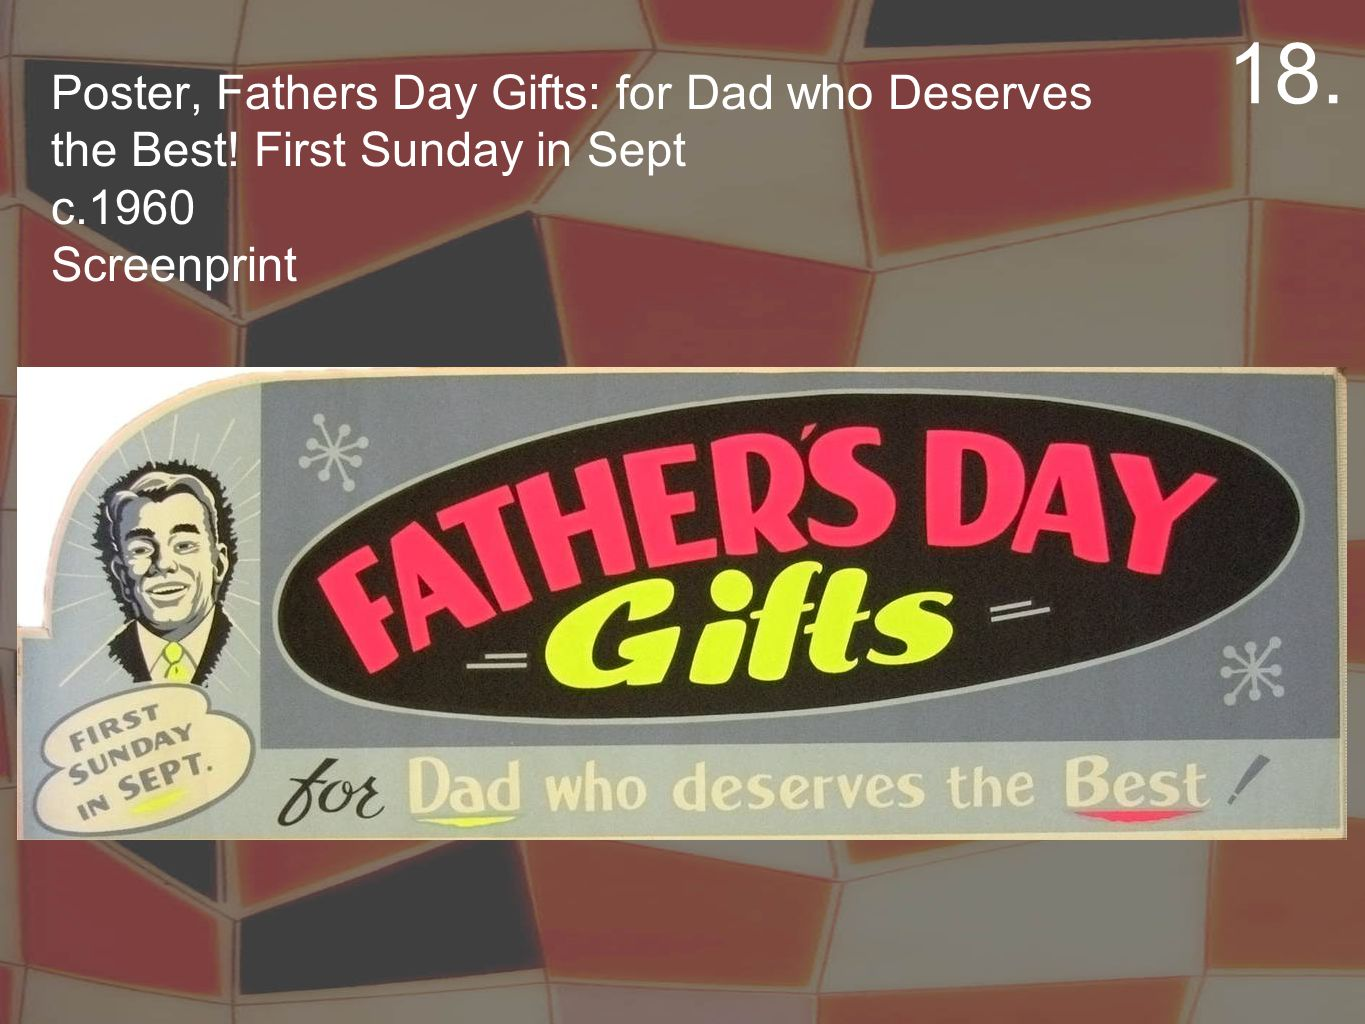 Poster, Fathers Day Gifts: for Dad who Deserves the Best! First Sunday in Sept c.1960 Screenprint 18.